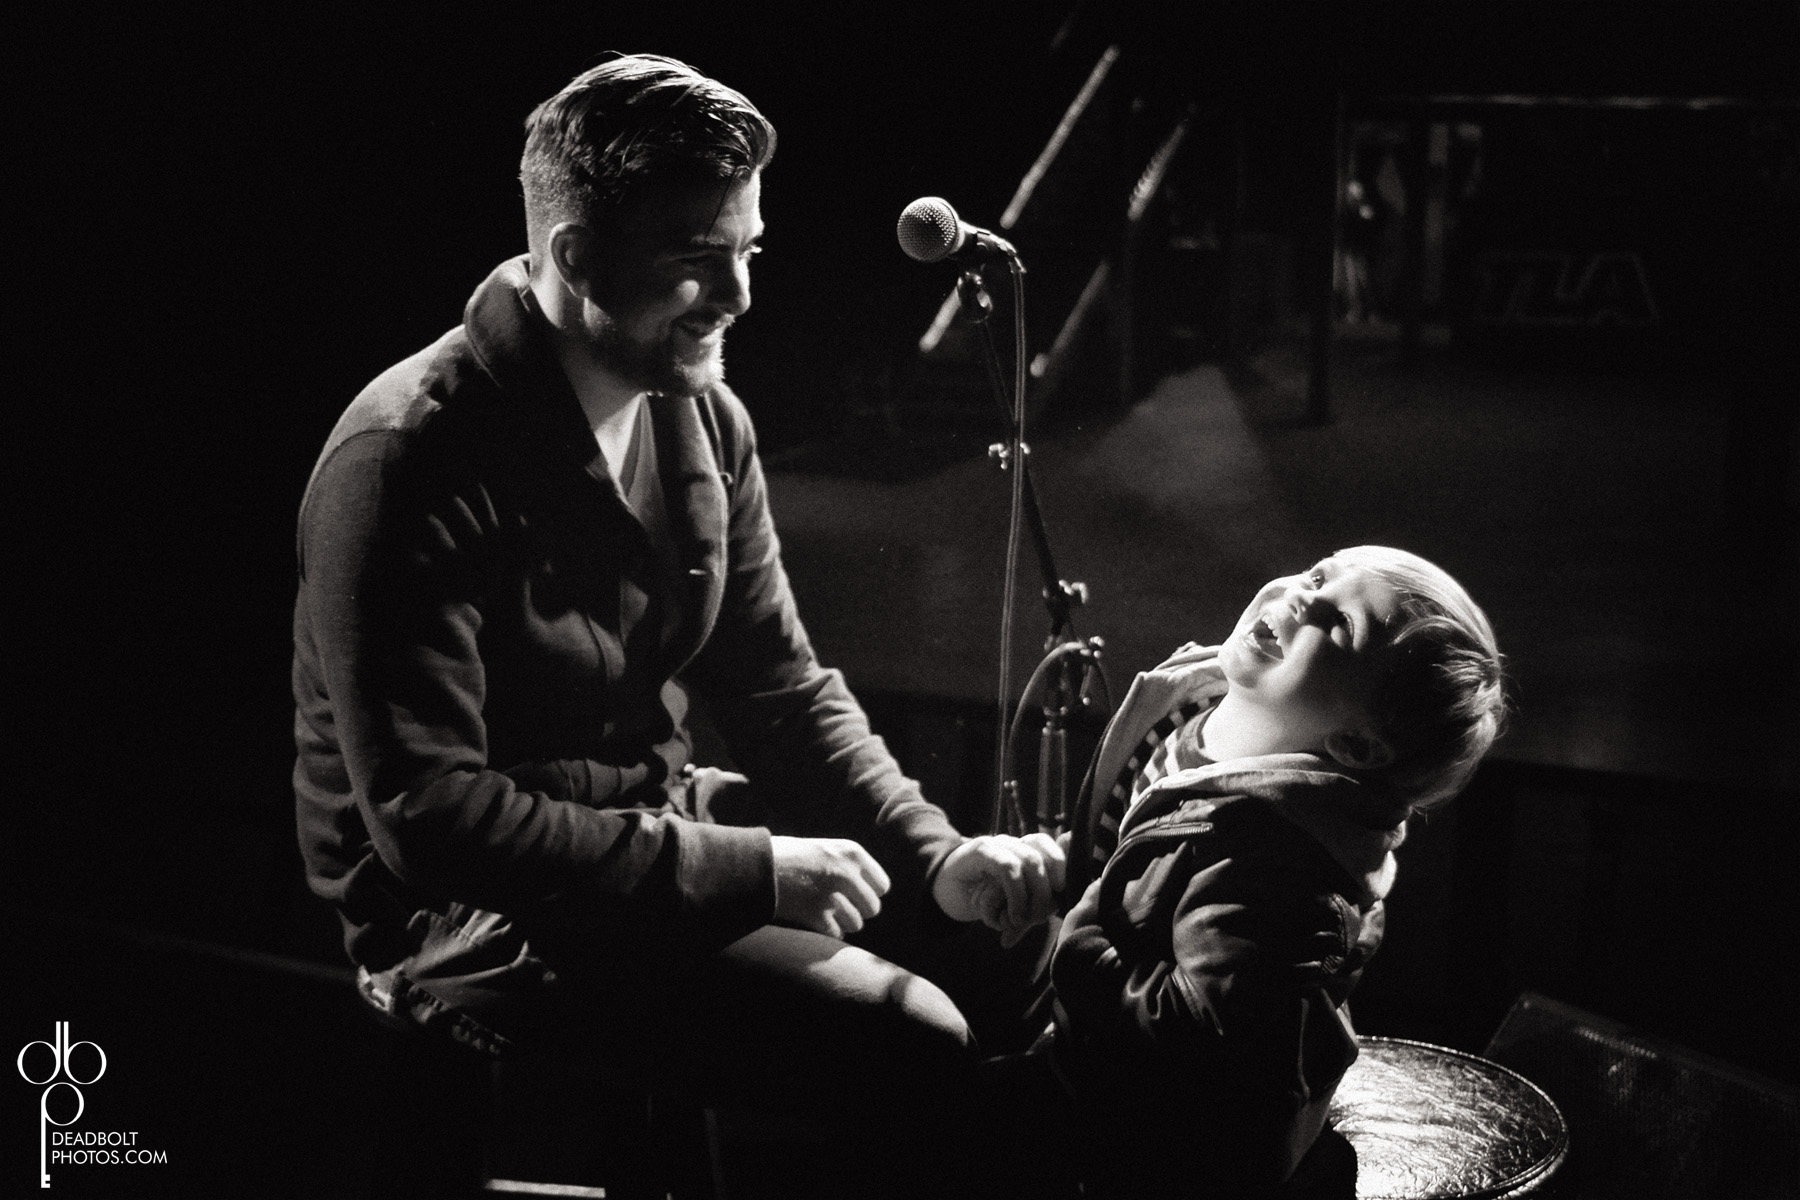 Anthony Green and James